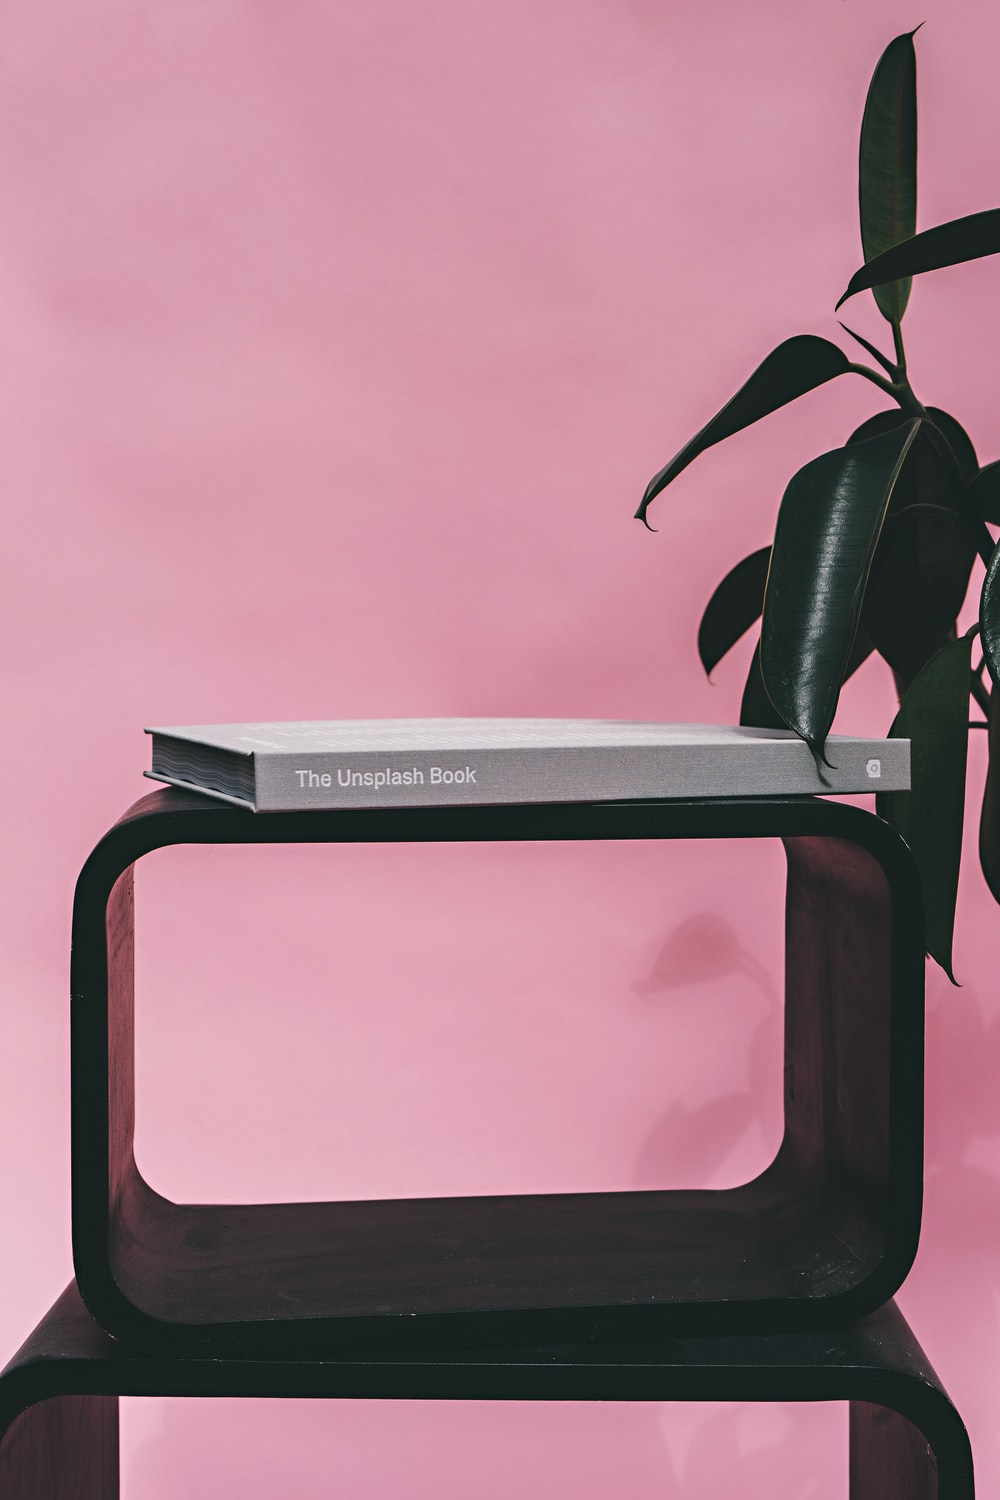 A cube shelf with a book on top, next to an indoor plant.